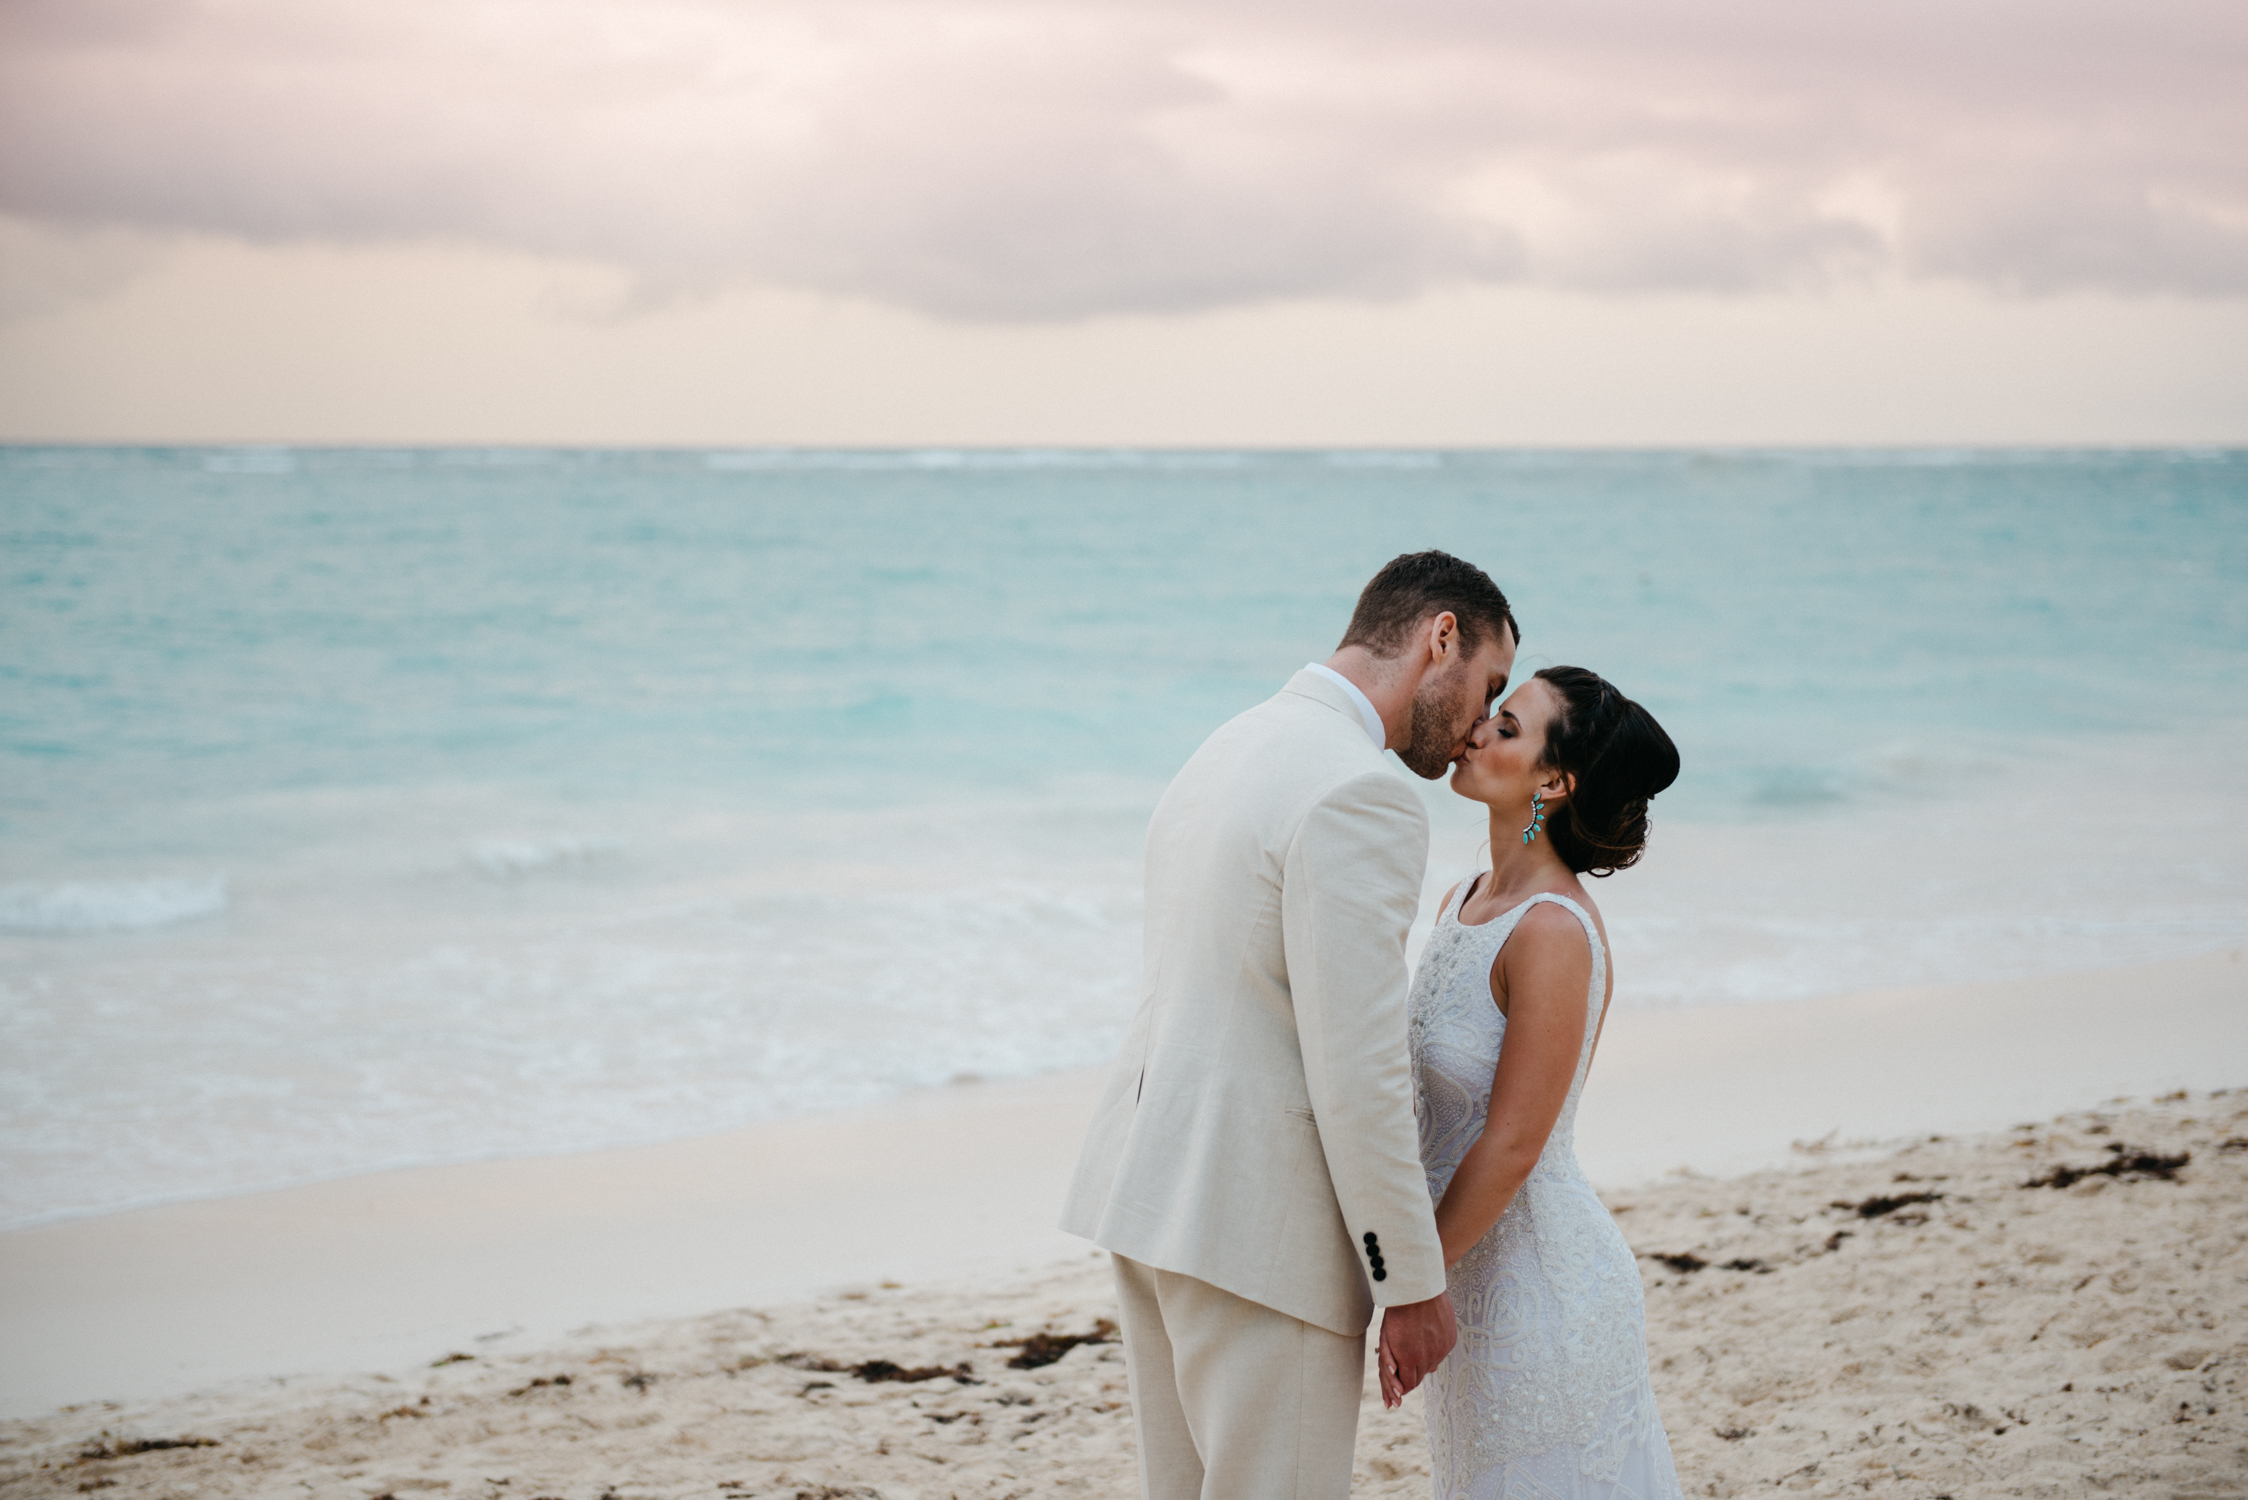 046_Punta_Cana_Dominican_Wedding.jpg